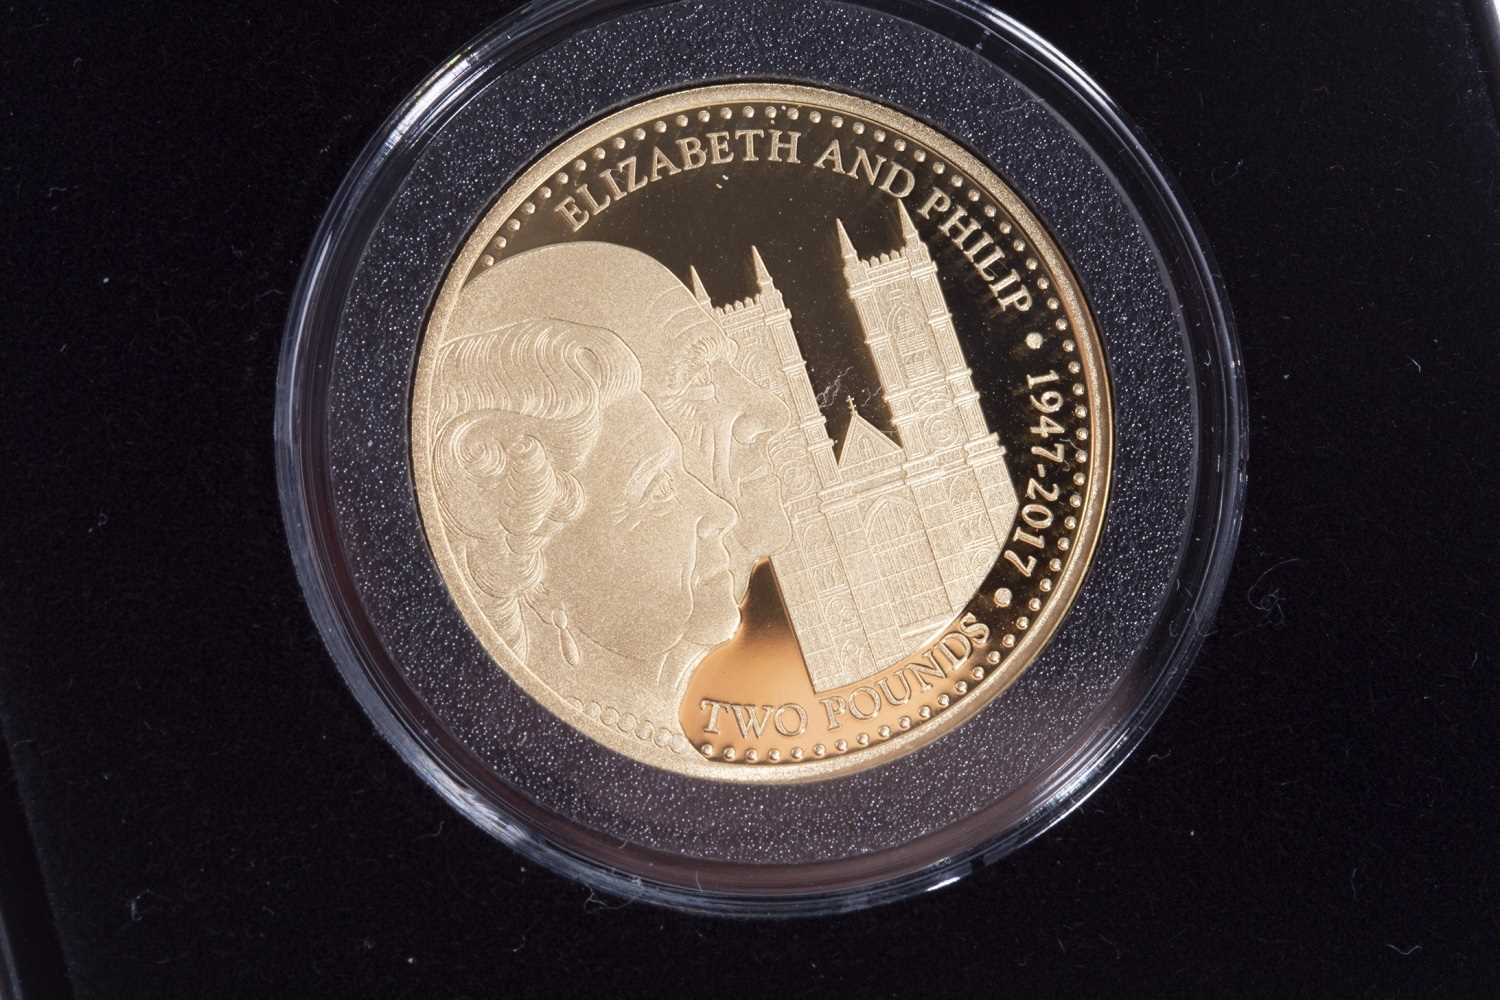 Lot 526 - A JUBILEE MINT GOLD £2 COIN